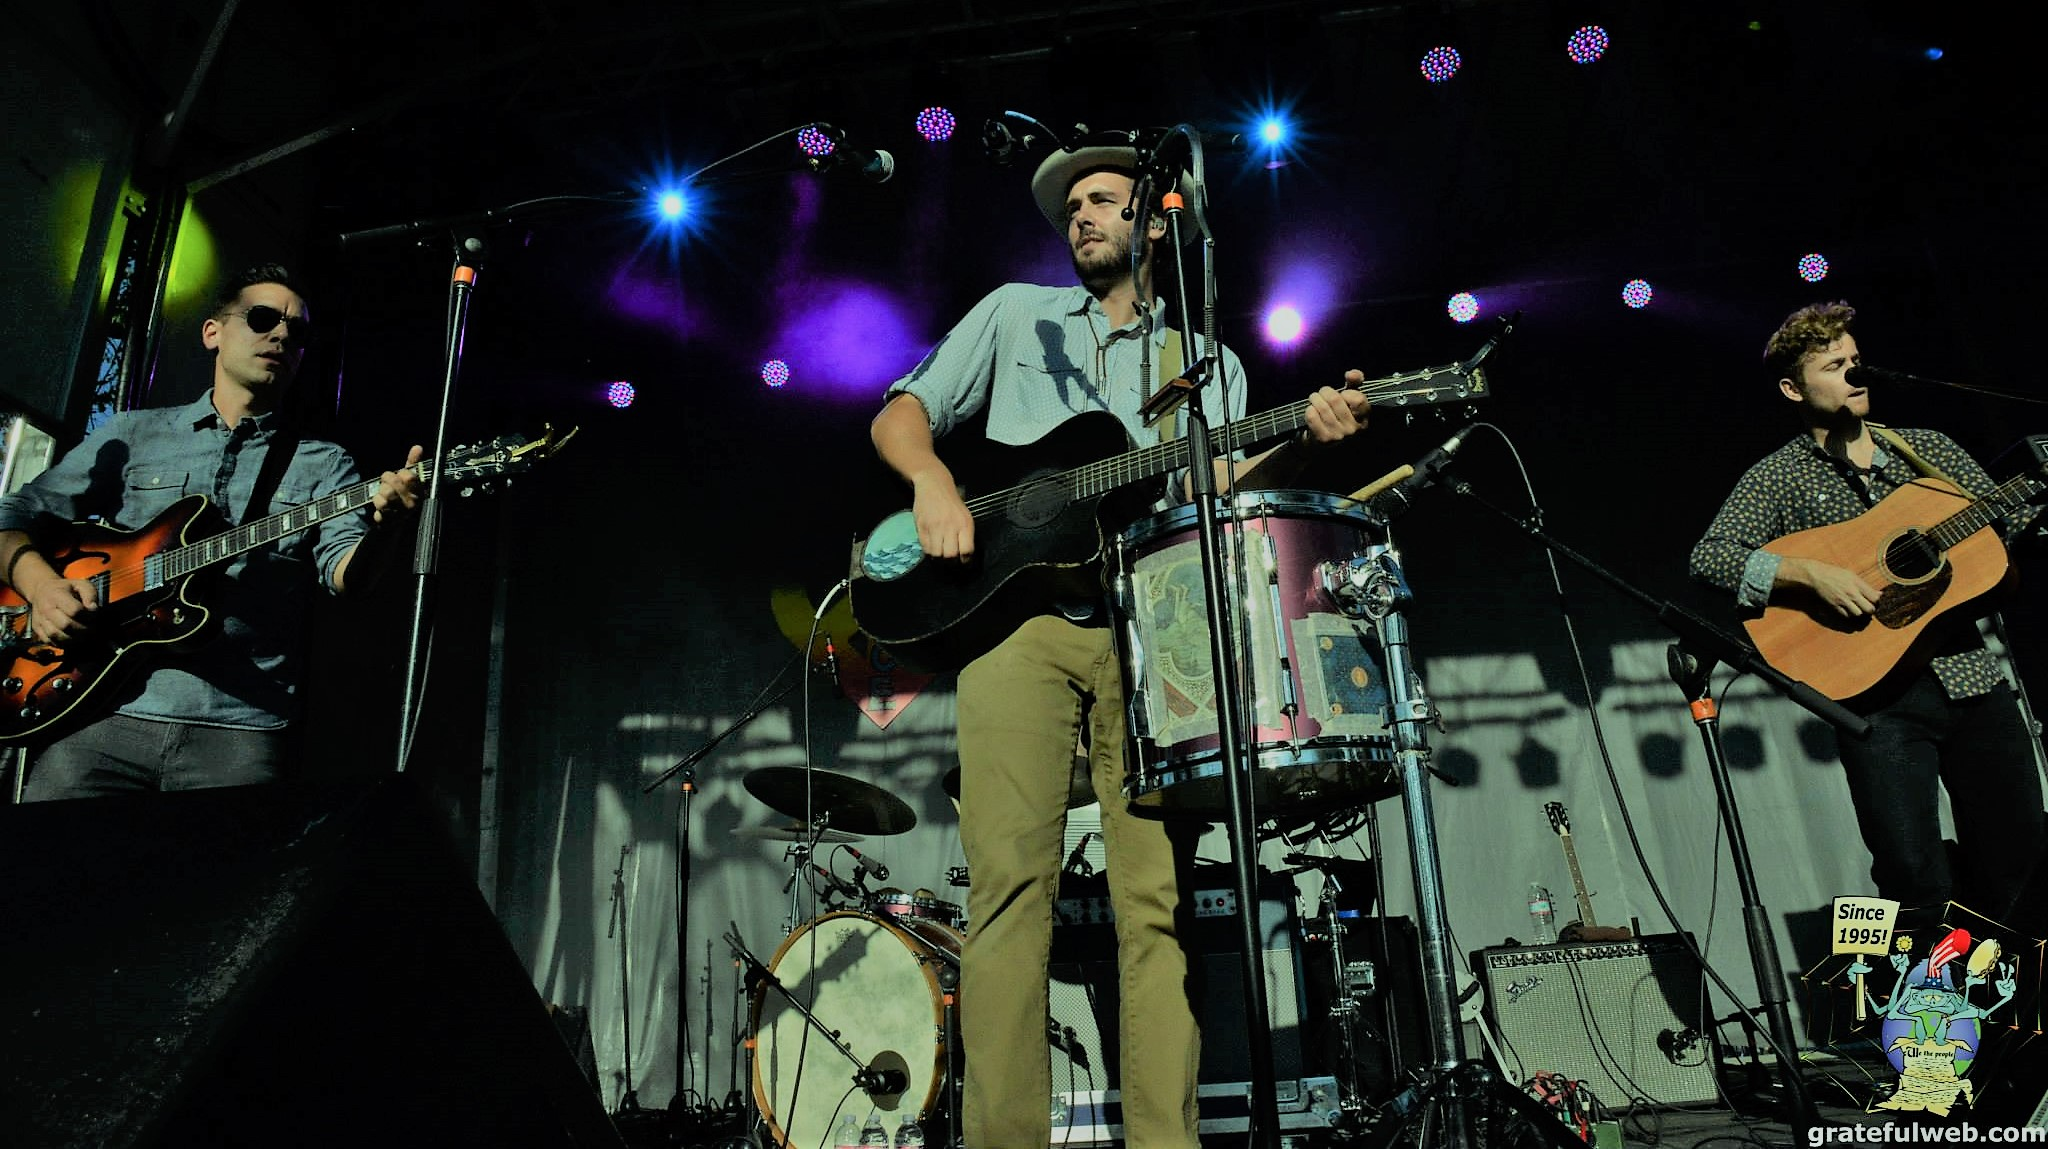 Lord Huron Tour 2020.Lord Huron Returns With Vide Noir Out 4 20 Grateful Web